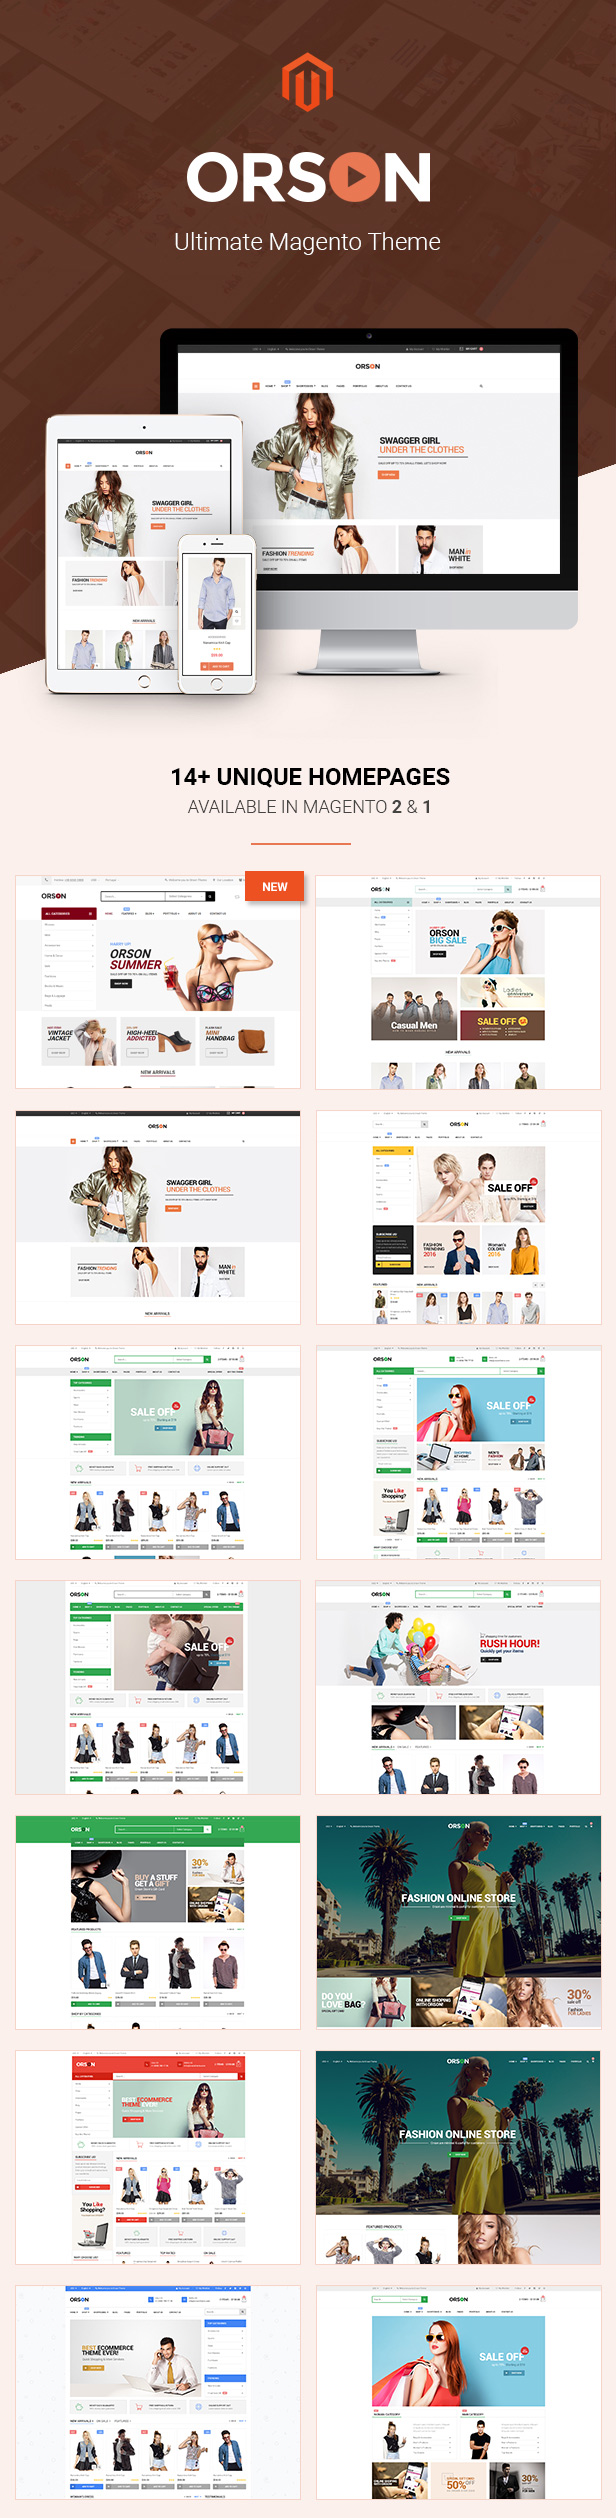 02 homepages 1 - Orson - Ultimate Magento 2 & 1 Theme